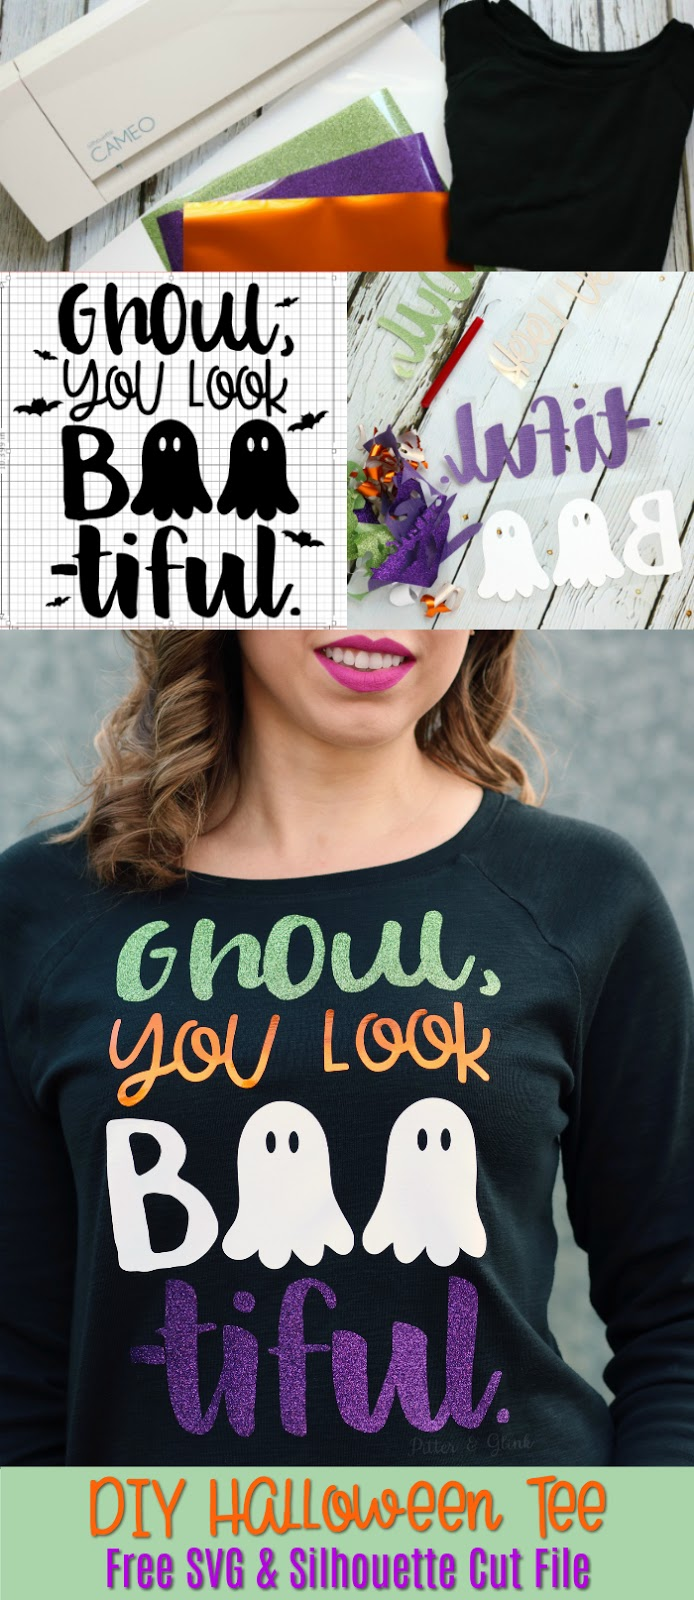 pitterandglink: diy glamorous halloween t-shirt + free cut file